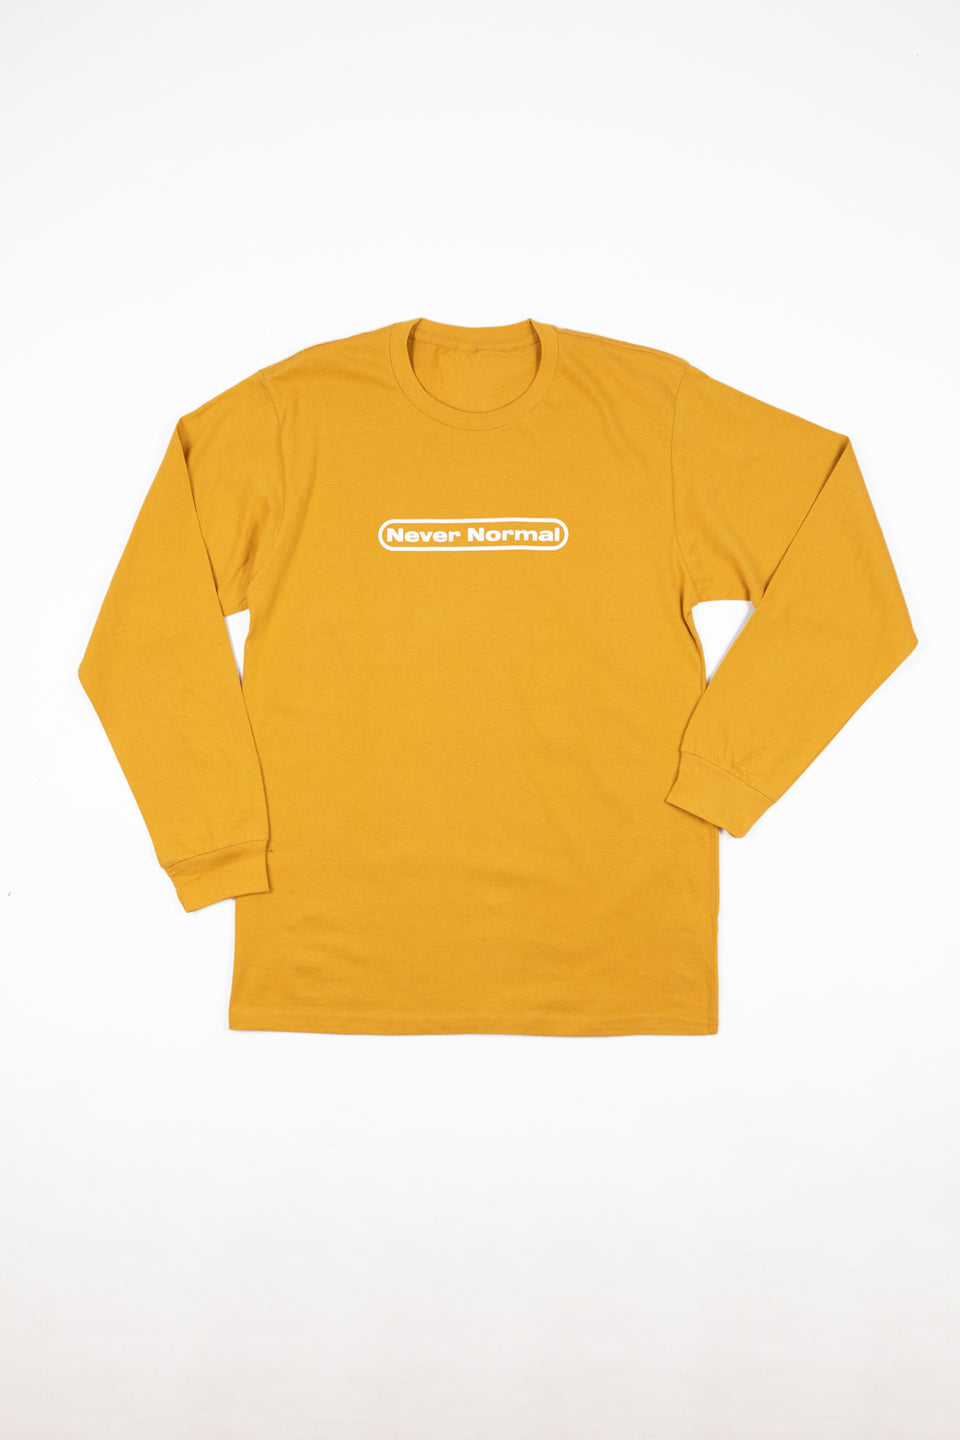 Sam Golbach: Never Normal Signature Mustard Shirt